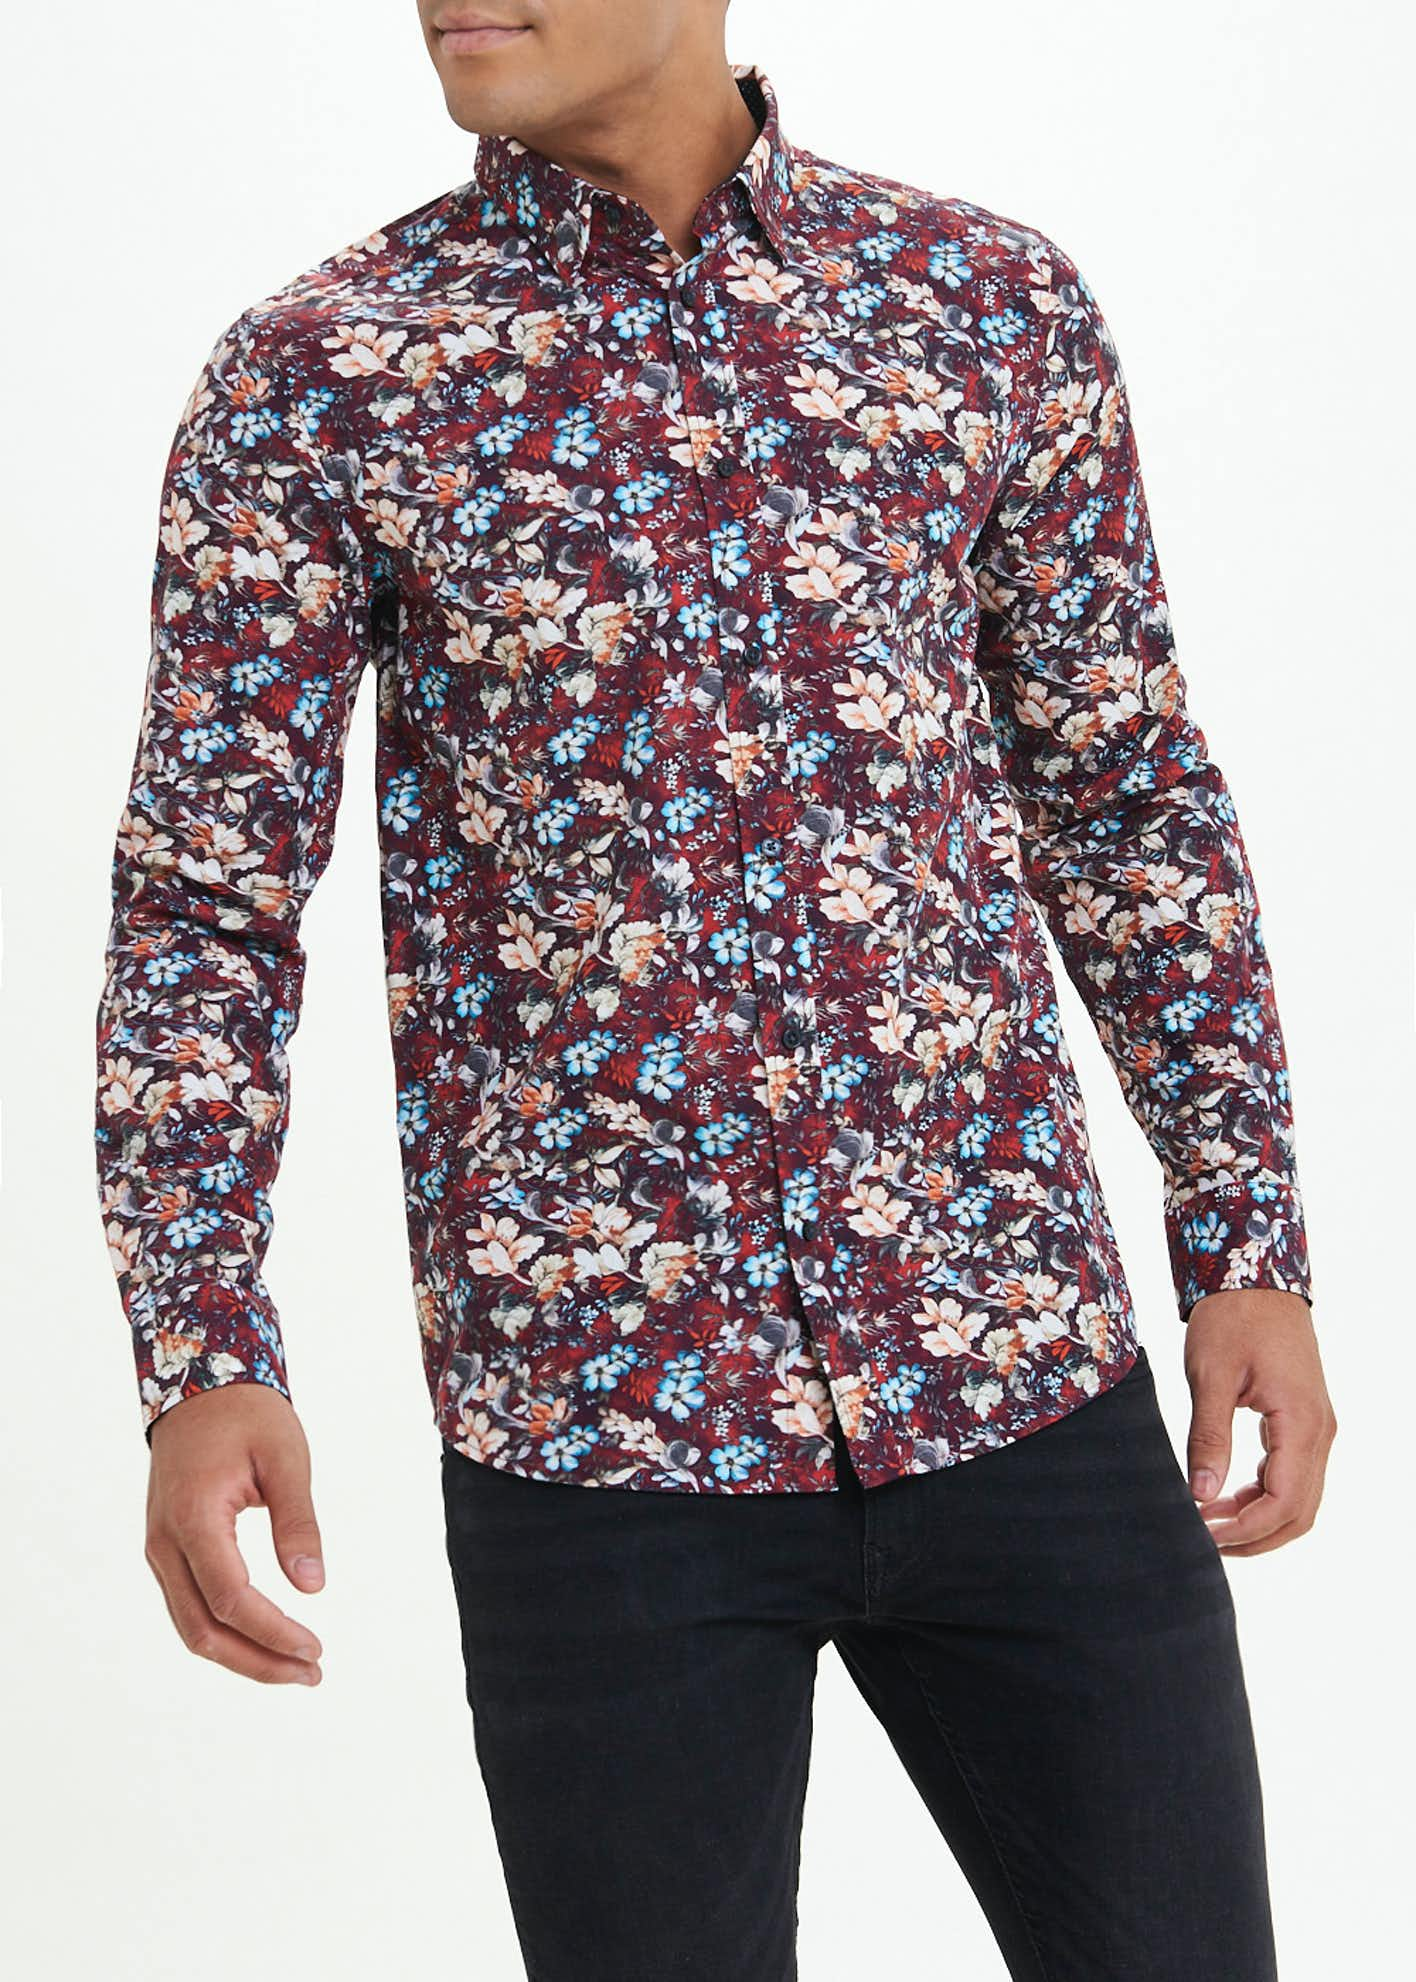 Easy Black Label Slim Fit Long Sleeve Floral Shirt